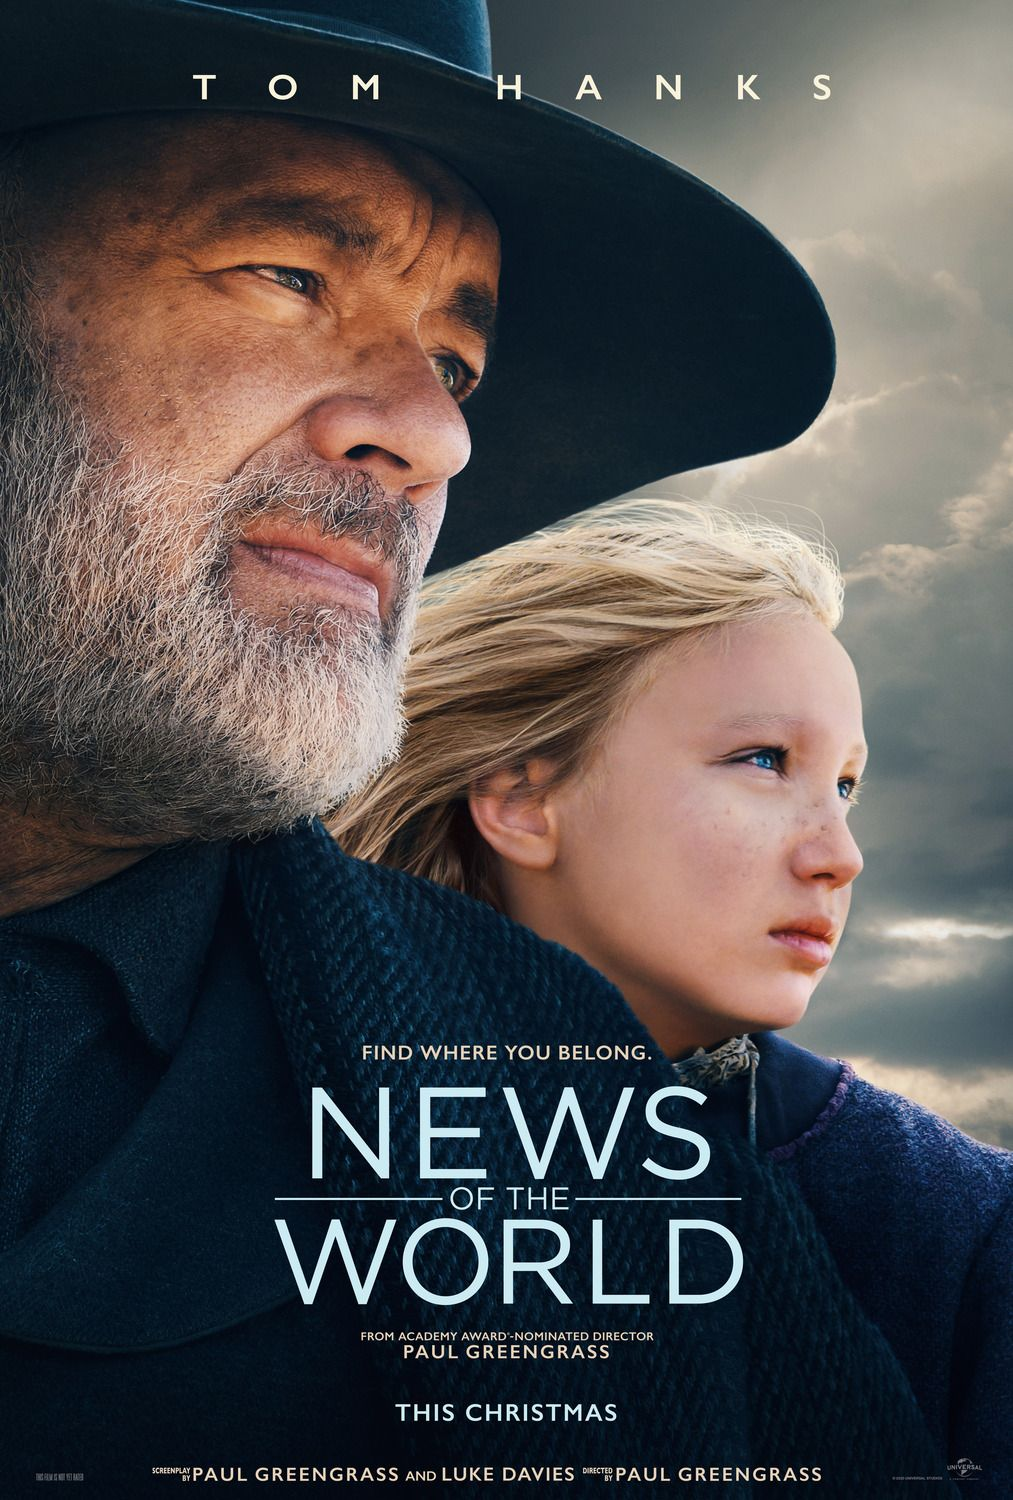 News Of The World Movie Starring Tom Hanks In 2020 Tom Hanks New Trailers Universal Pictures